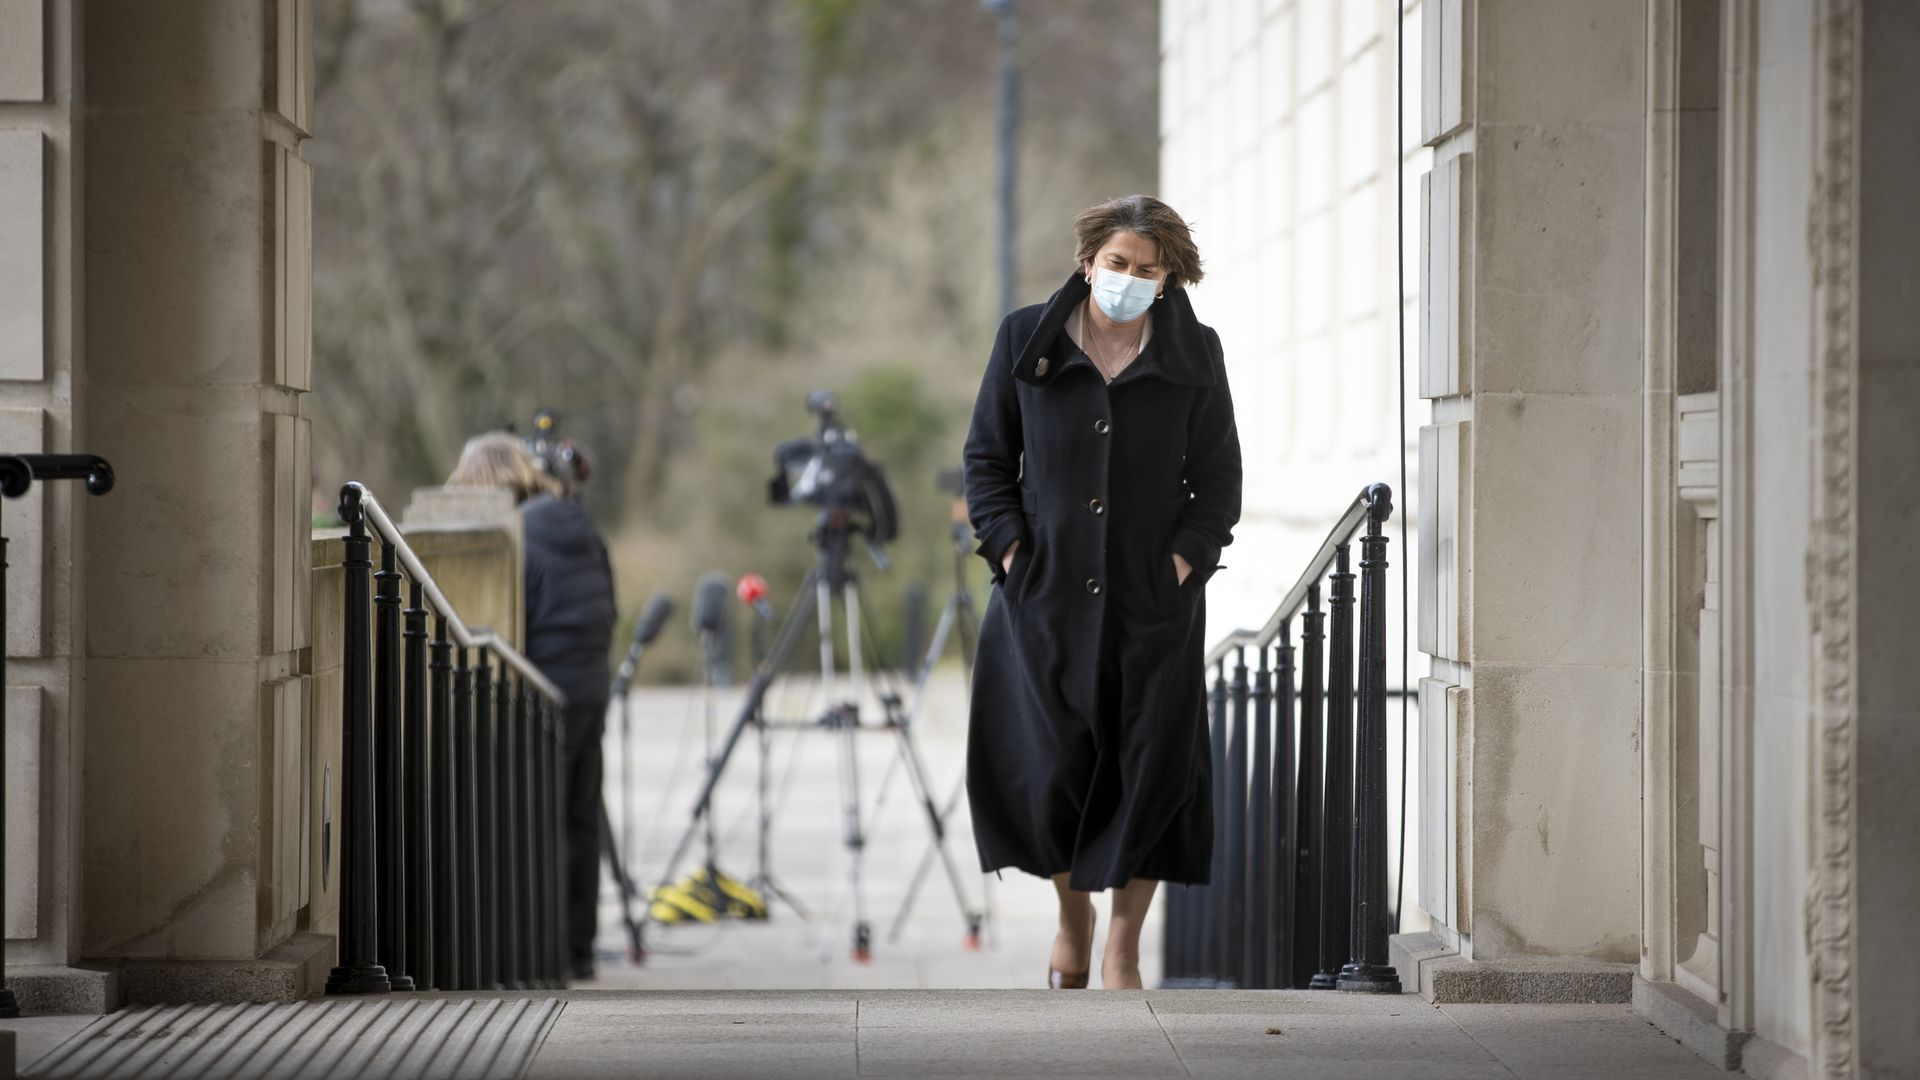 Arlene Foster during a press conference outside Stormont, Belfast - Credit: PA